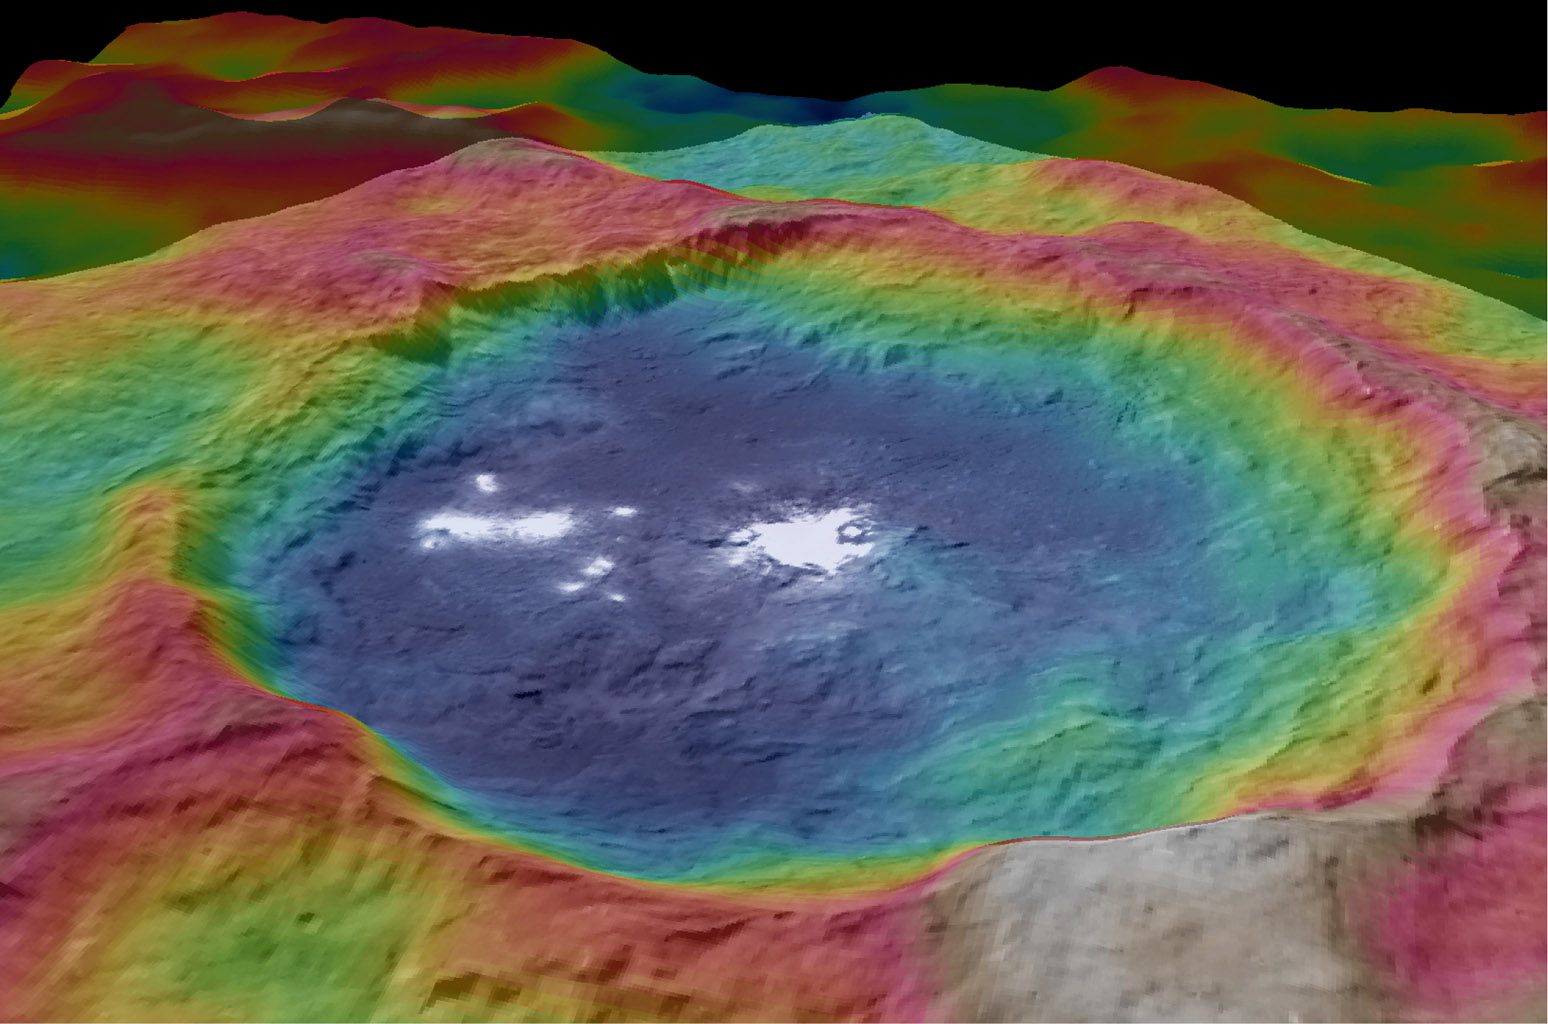 This view, made using images taken by NASA's Dawn spacecraft, is a color-coded topographic map of Occator crater on Ceres. Blue is the lowest elevation, and brown is the highest.